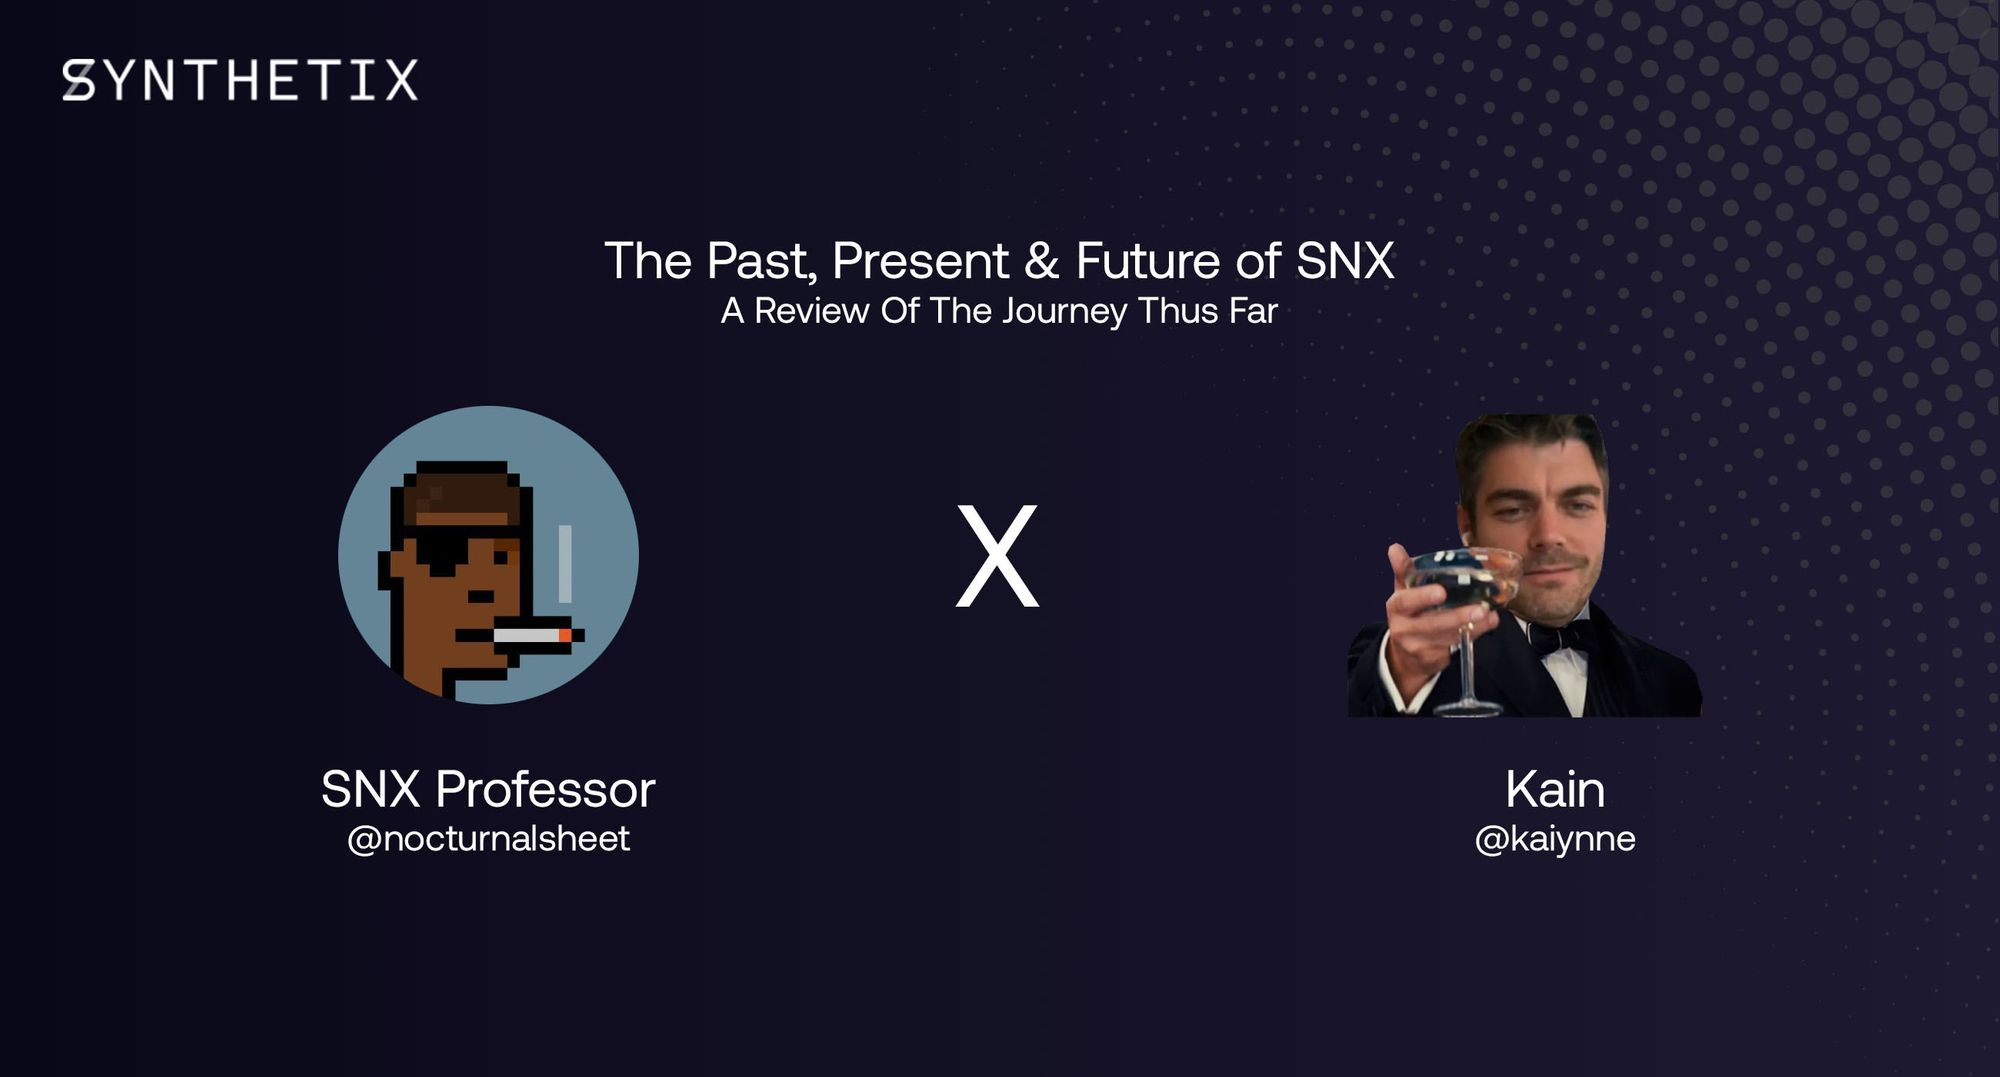 Interview: The Past, Present & Future of Synthetix with the SNX Professor and Kain